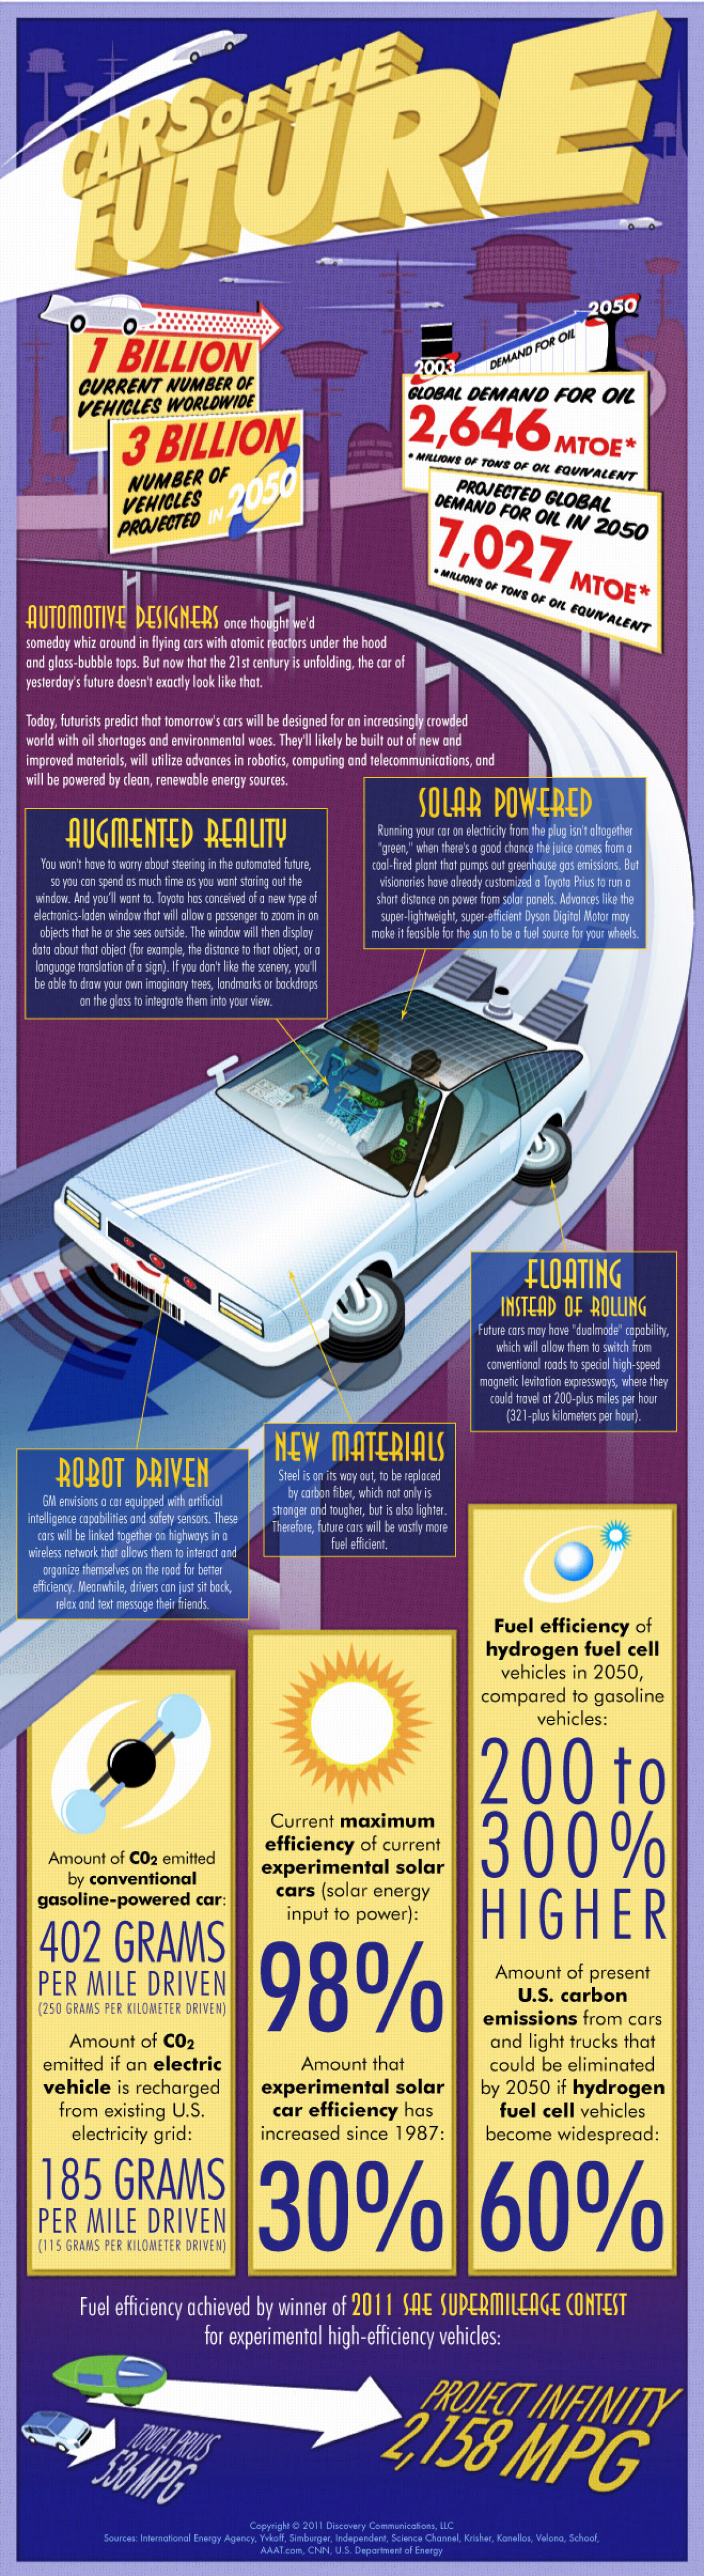 Cars of the Future Infographic